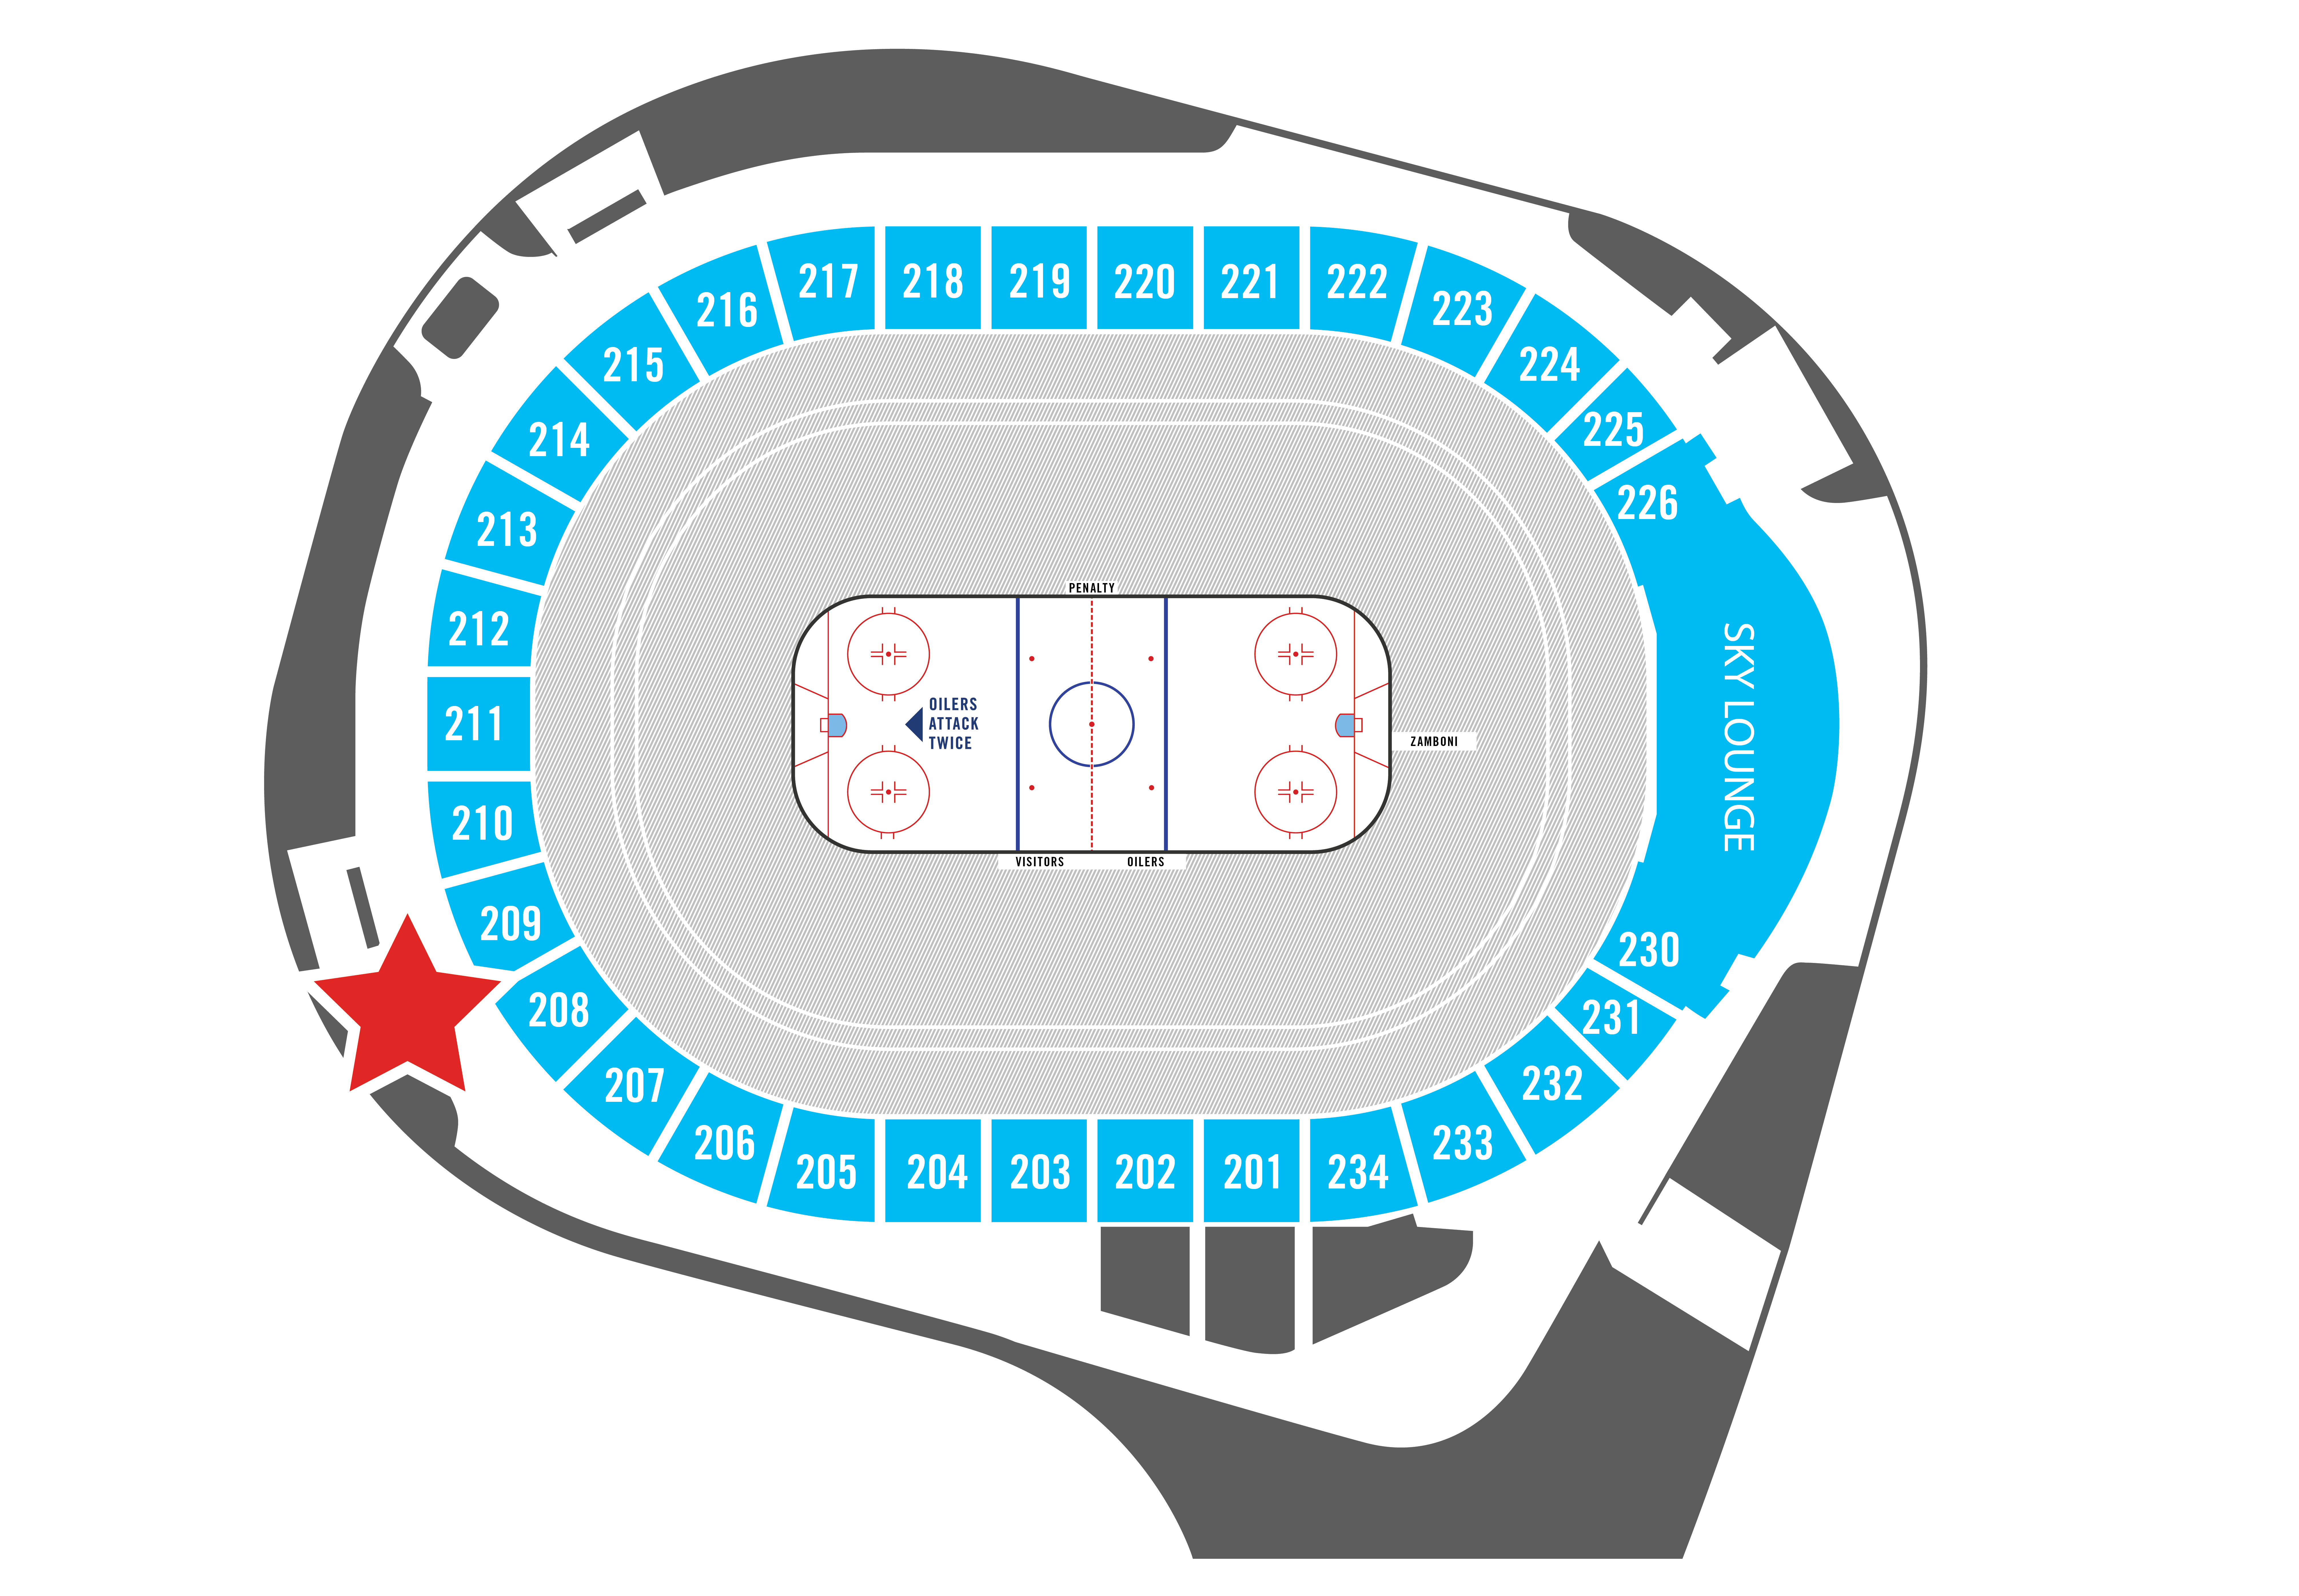 Pizza 73 (Section 208)